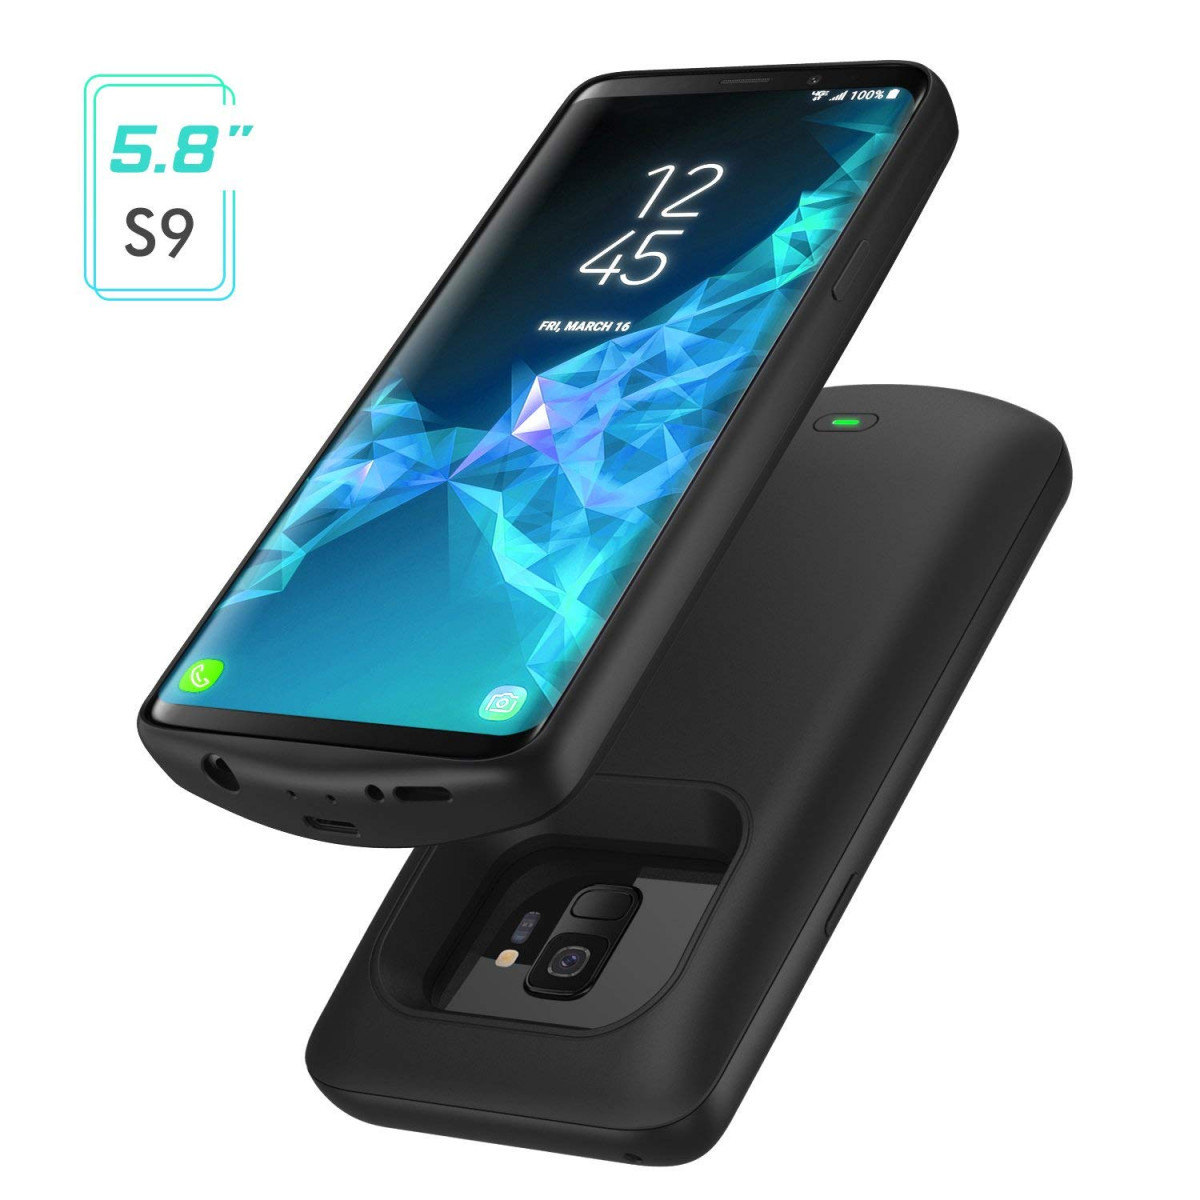 low priced 6aee5 ccba0 Galaxy S9 Battery Case, MoKo 4700mAh External Rechargeable Power Charger  Case, Soft TPU Full Edge Protective Battery Cover for Samsung Galaxy S9, ...